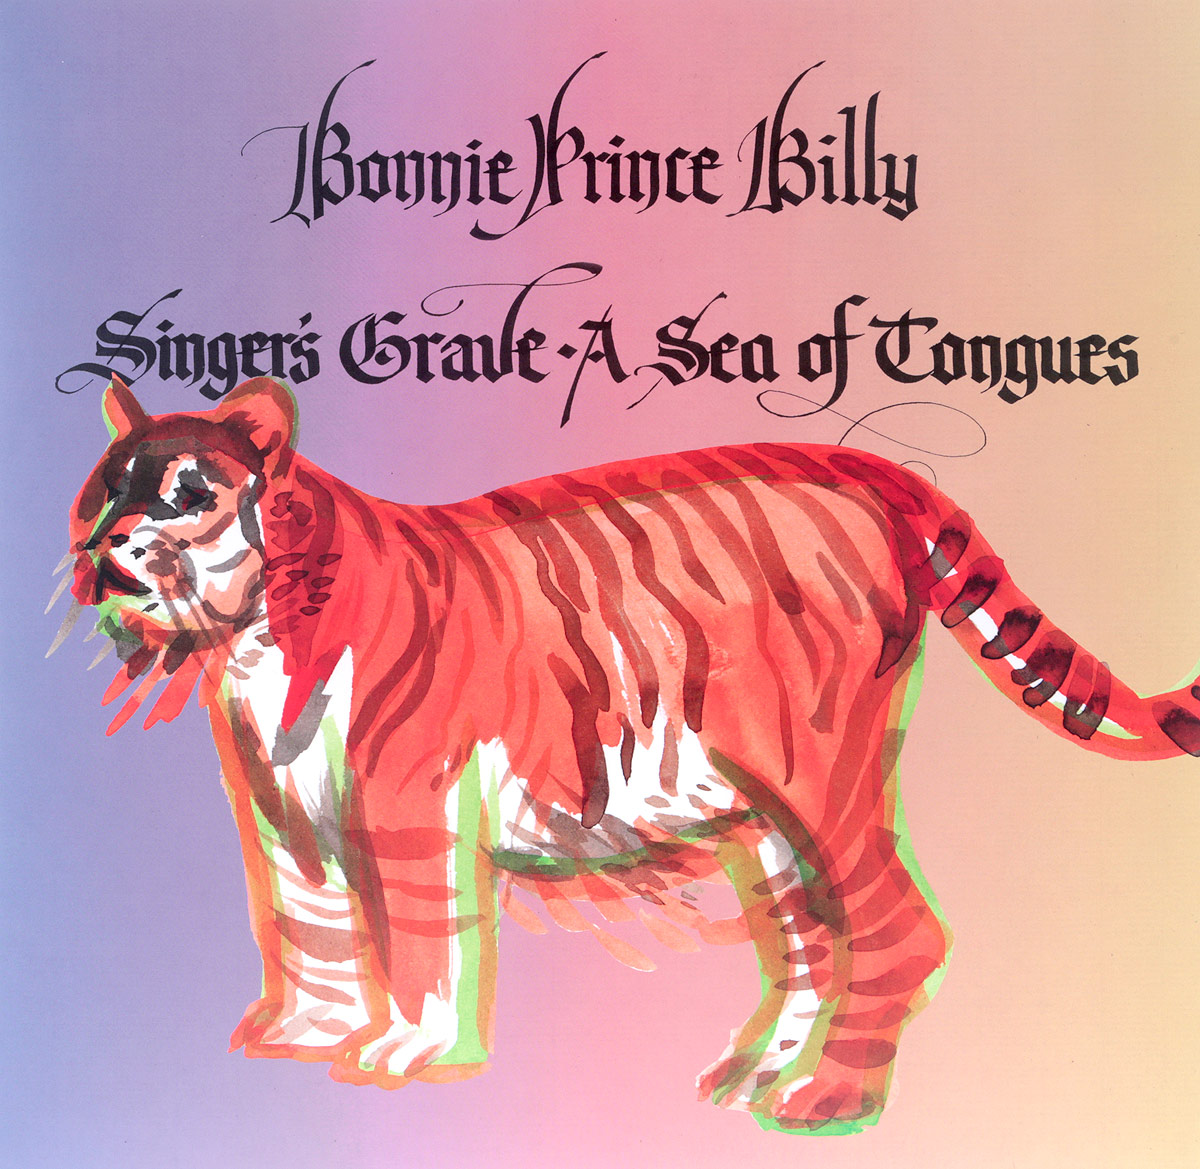 Уилл Олдхэм Bonnie Prince Billy. Singer'S Grave A Sea Of Tongues (2 LP) james yorkston the cellardyke recording and wassailing society 2 lp